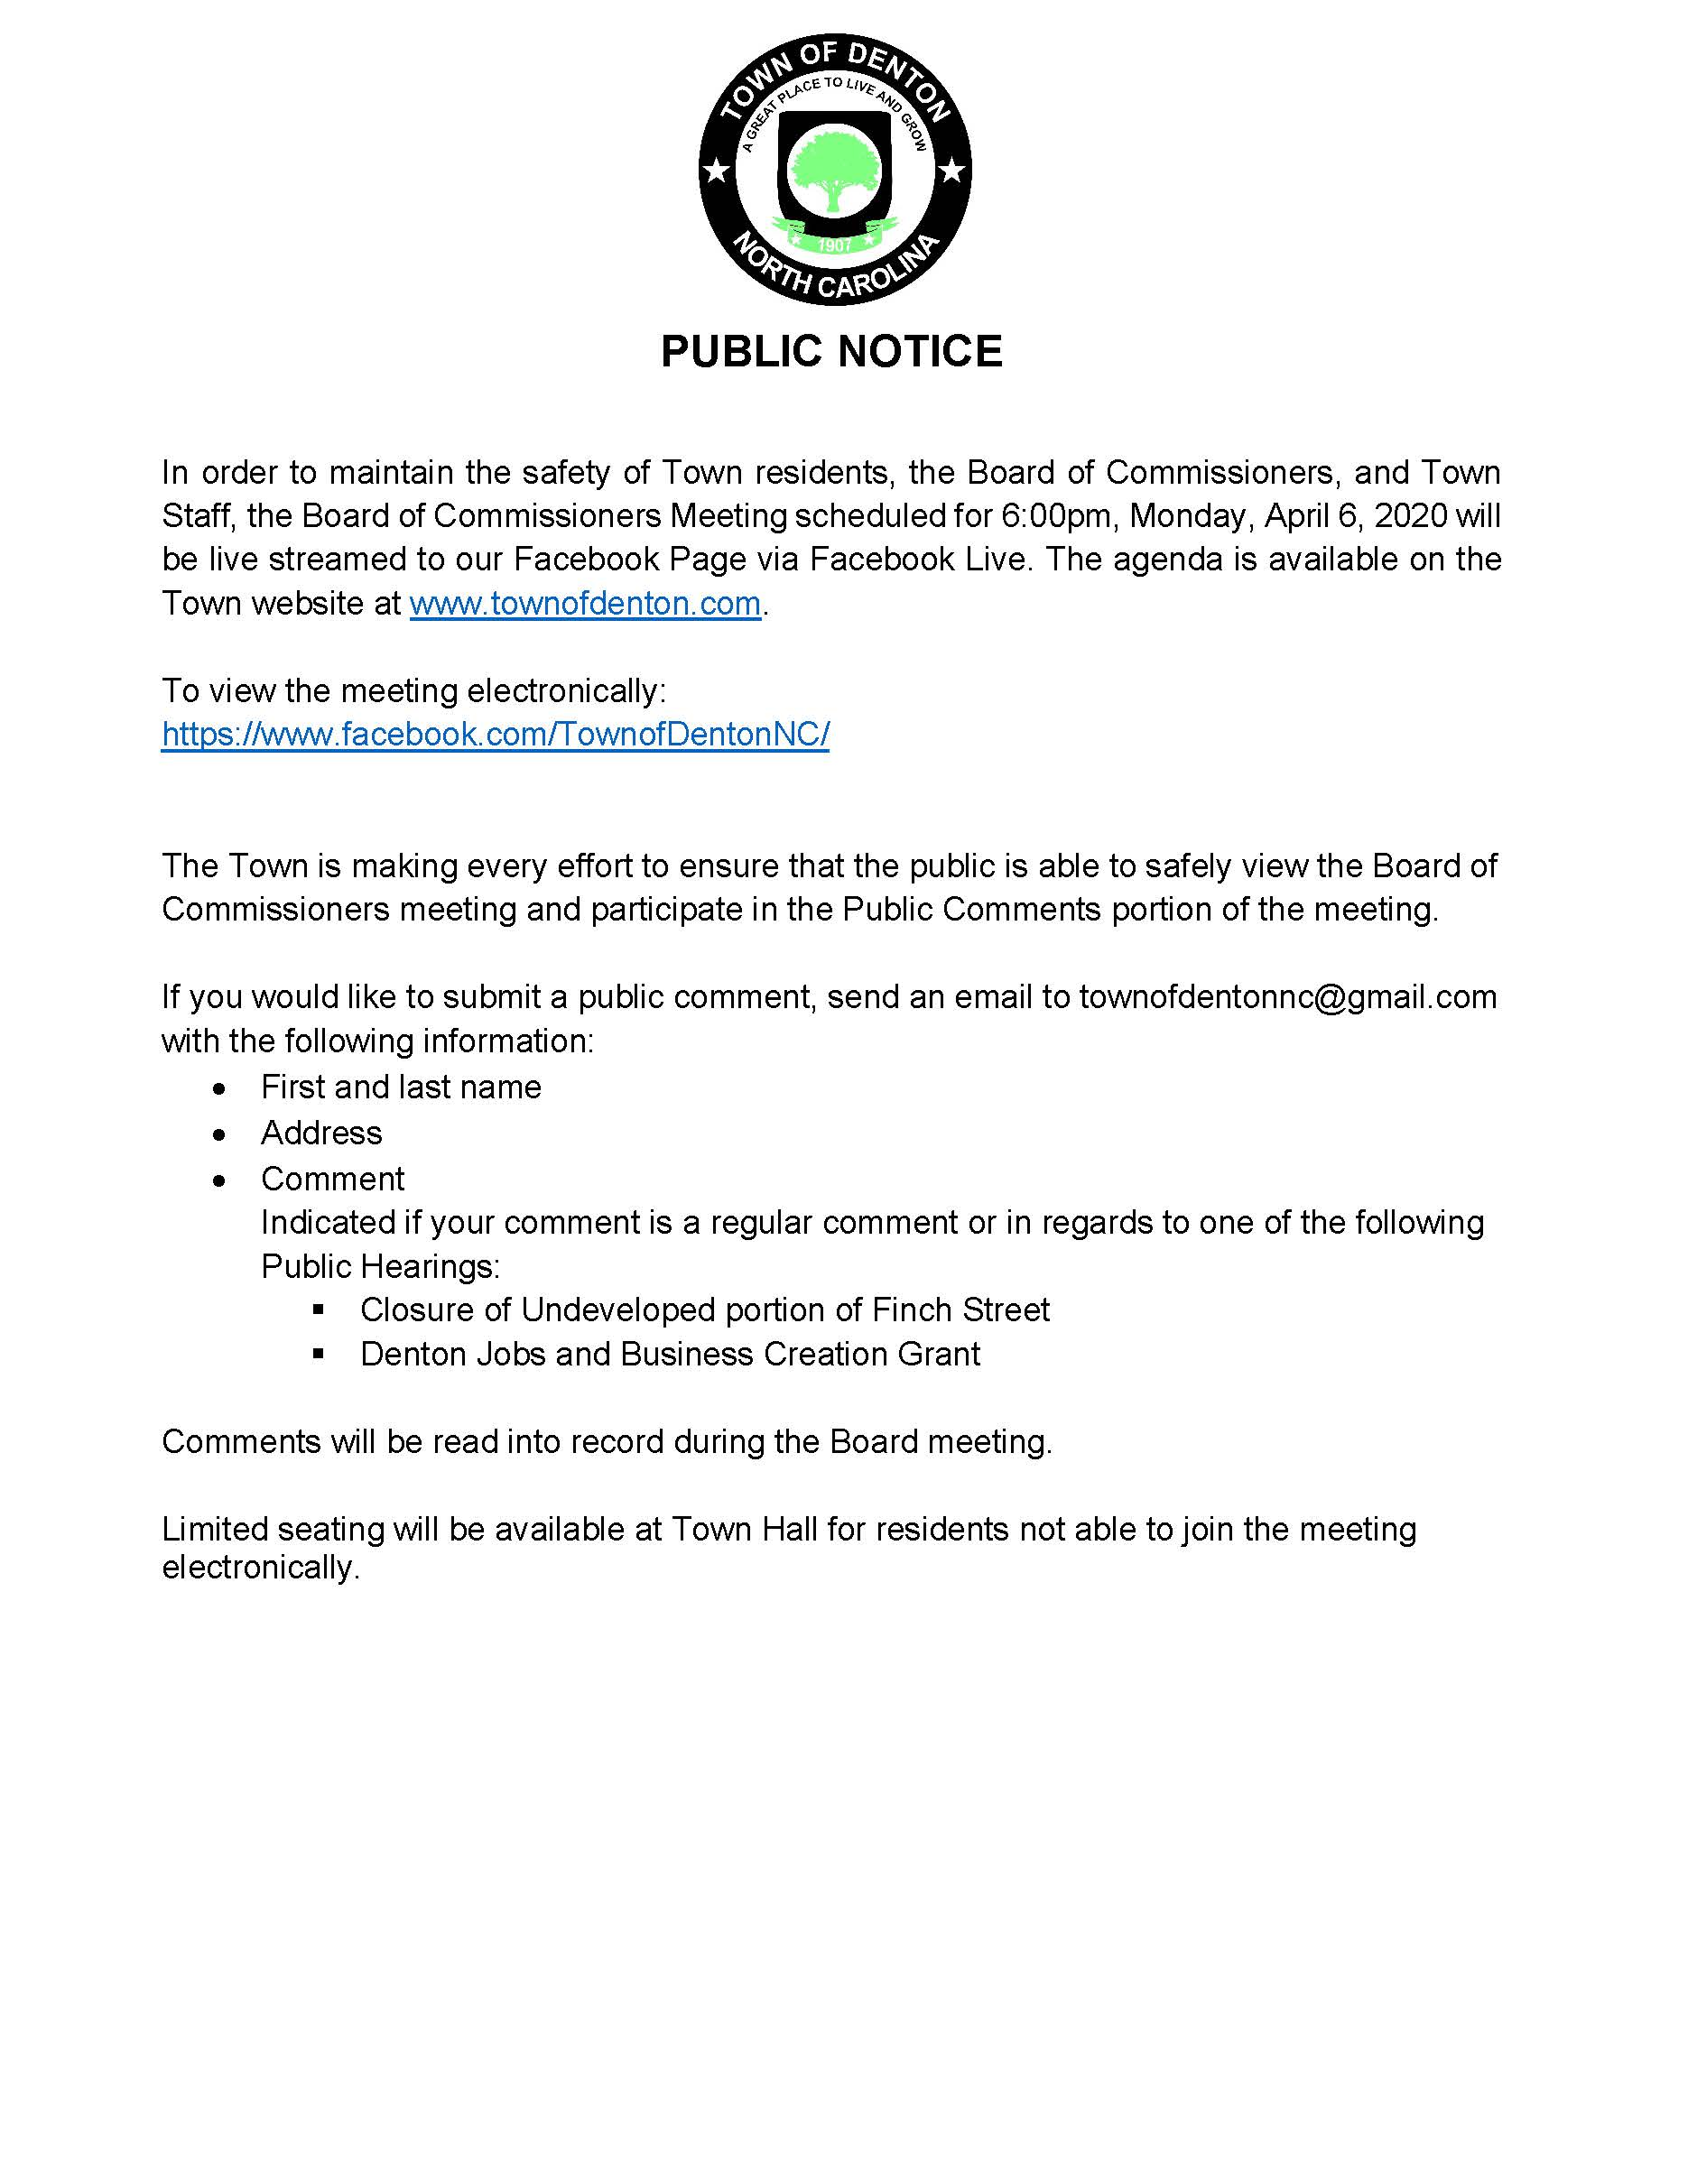 Public Notice Electronic Meeting 04 06 20